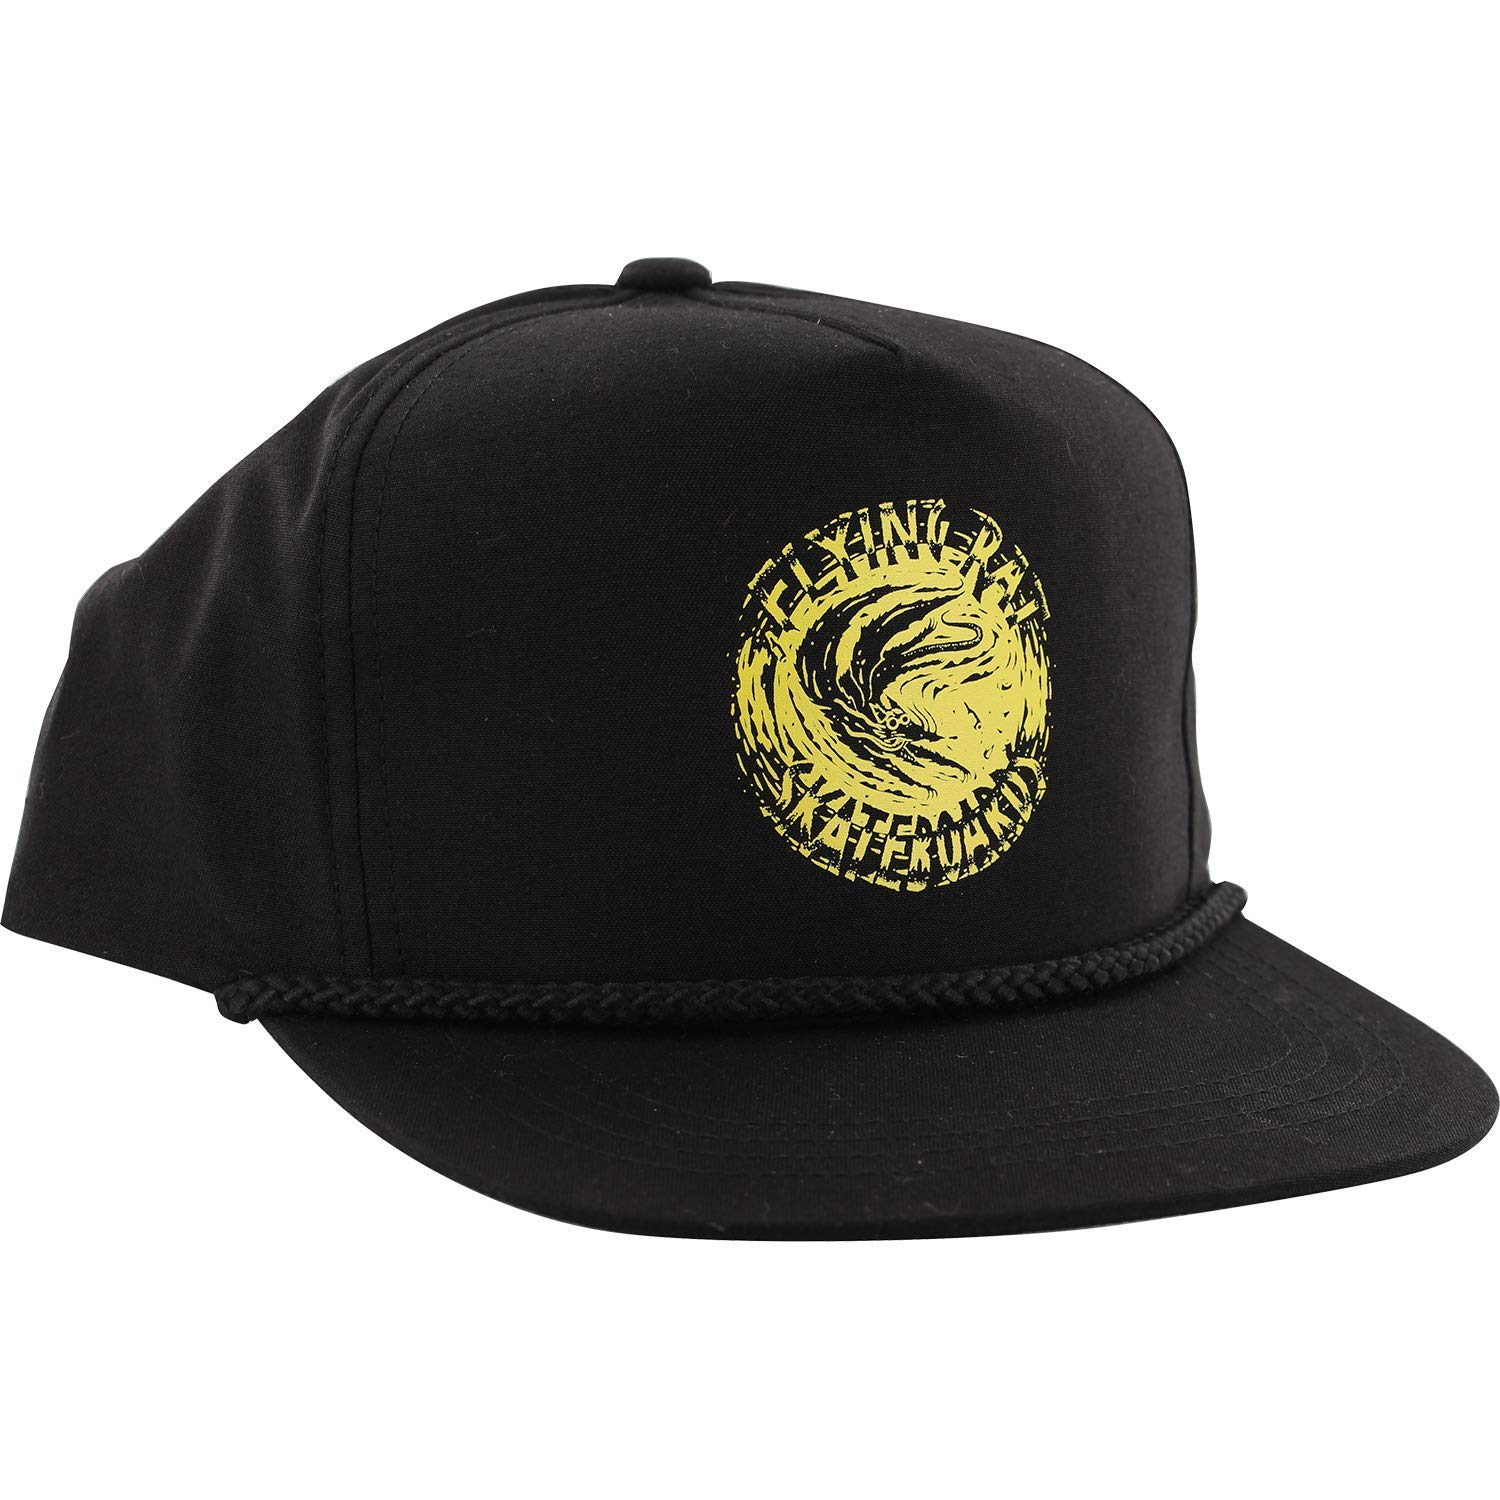 c7675d17de6 Get Quotations · Anti Hero Skateboards Flying Rat Poplin Black Snapback Hat  - Adjustable